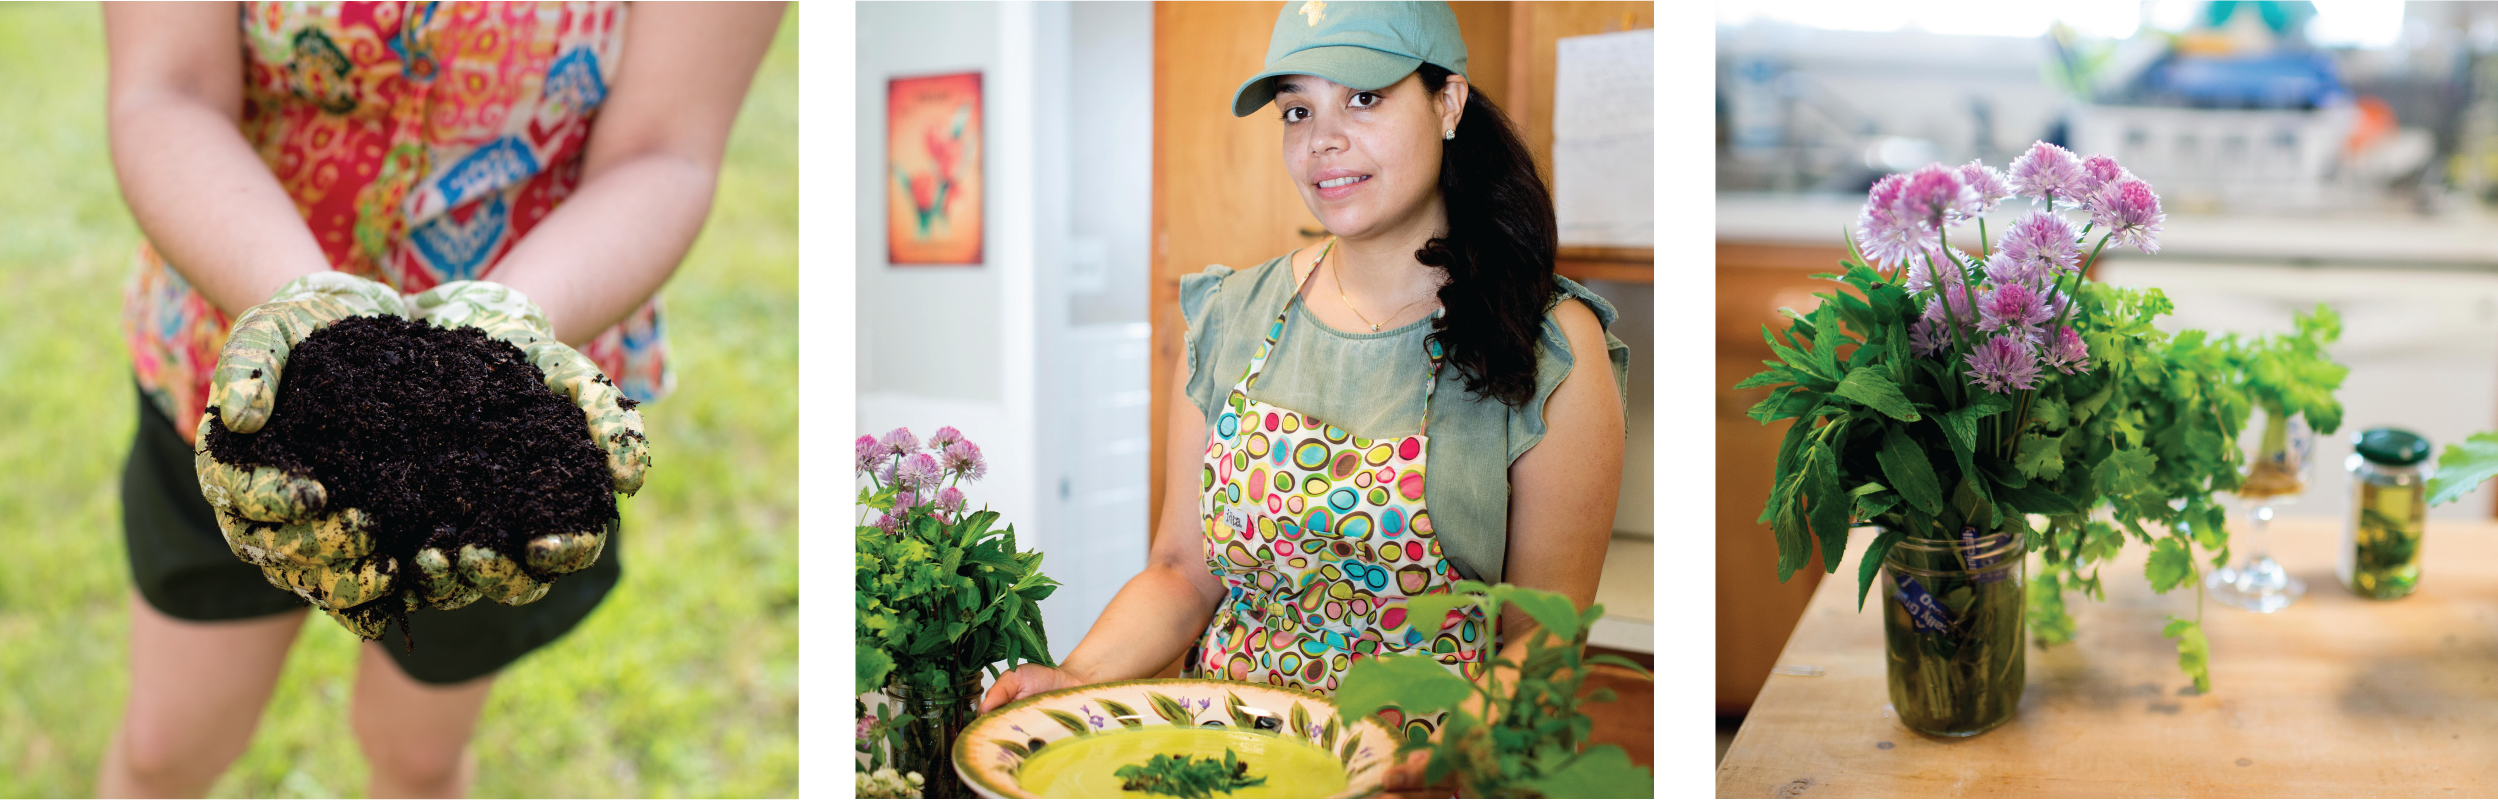 priscila espinosa workshops organizational wellness no dig gardens herbs food remedies